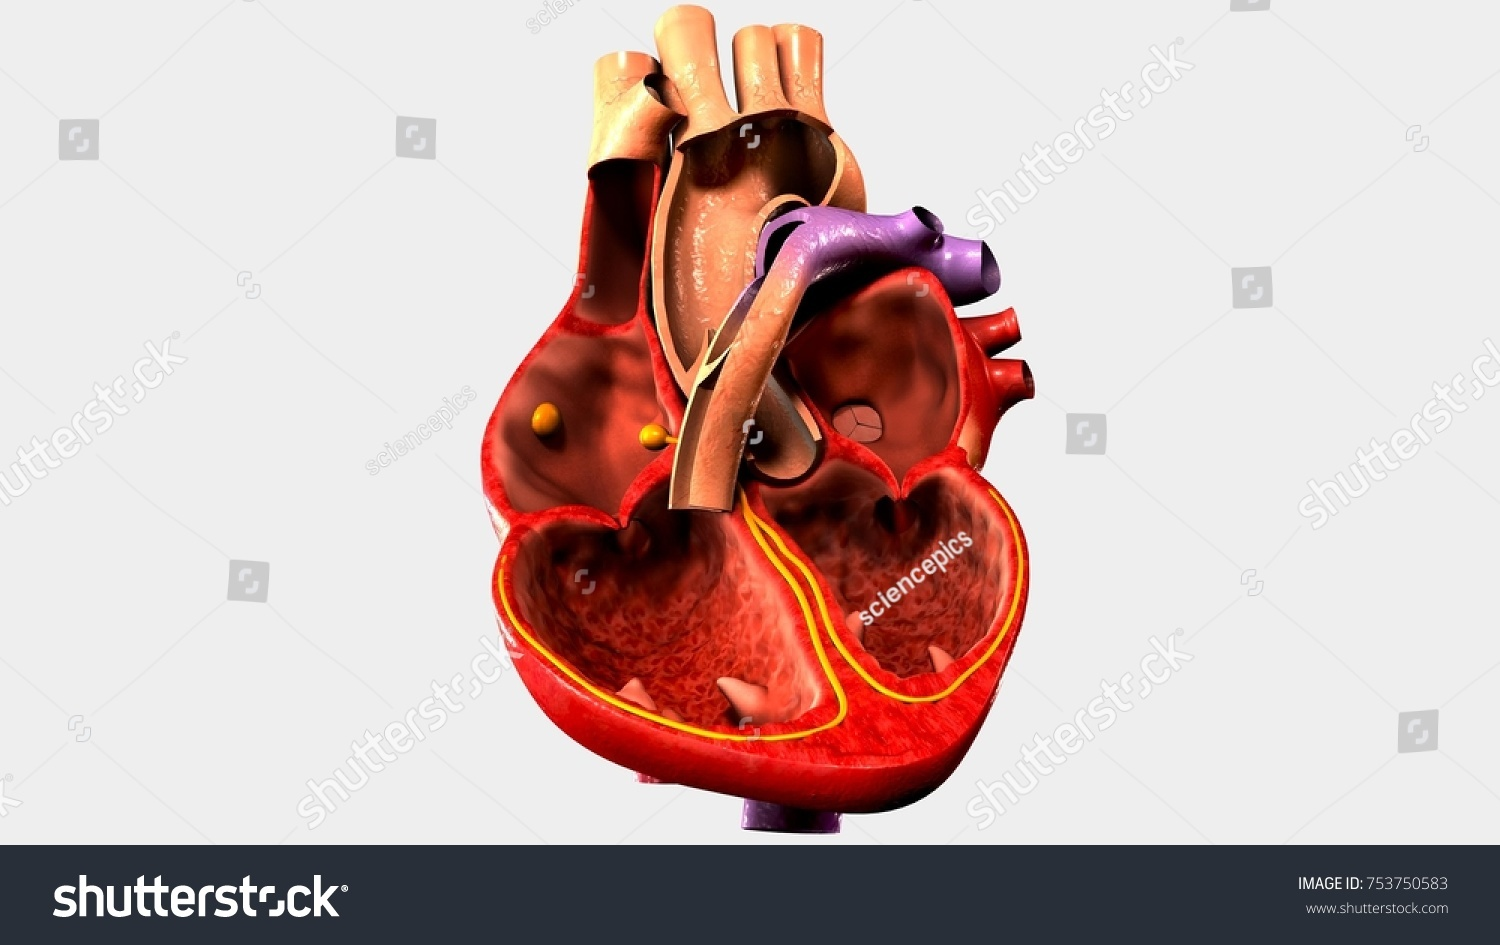 Human Heart Anatomy 3 D Illustration Stock Illustration 753750583 ...